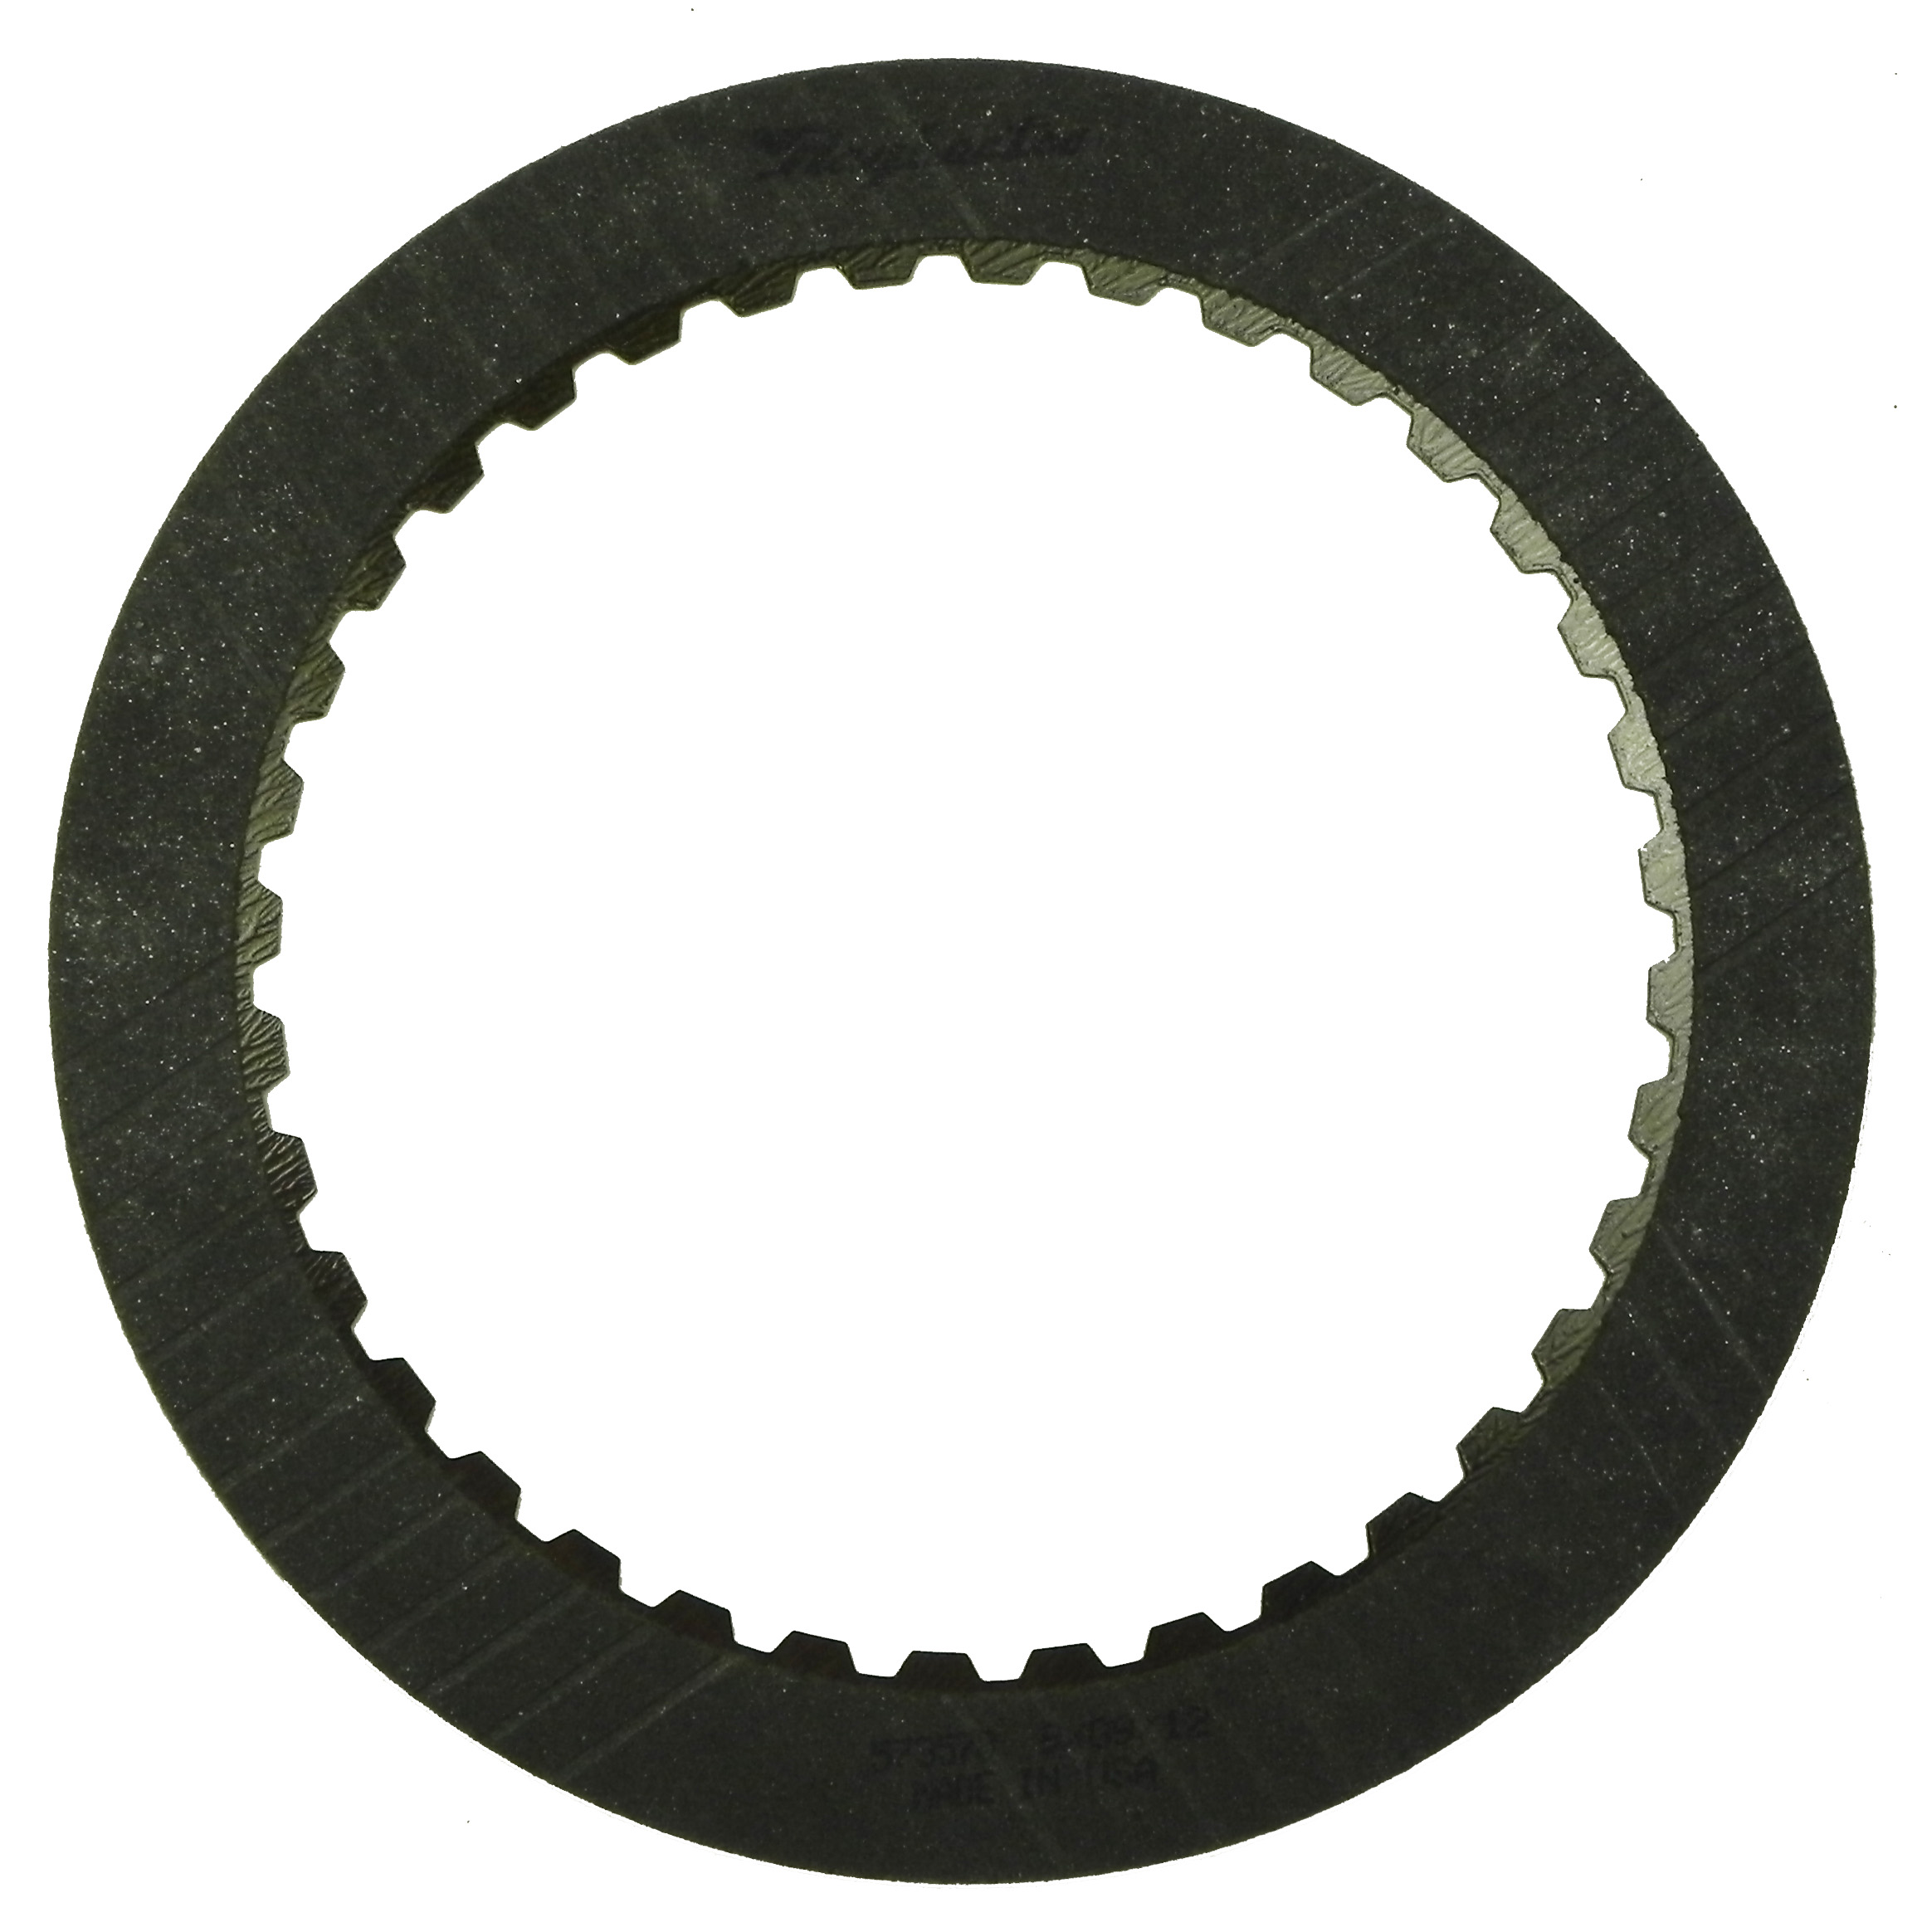 R573578 | 2008-ON Friction Clutch Plate High Energy 2, 3, 4, 6 Brake High Energy